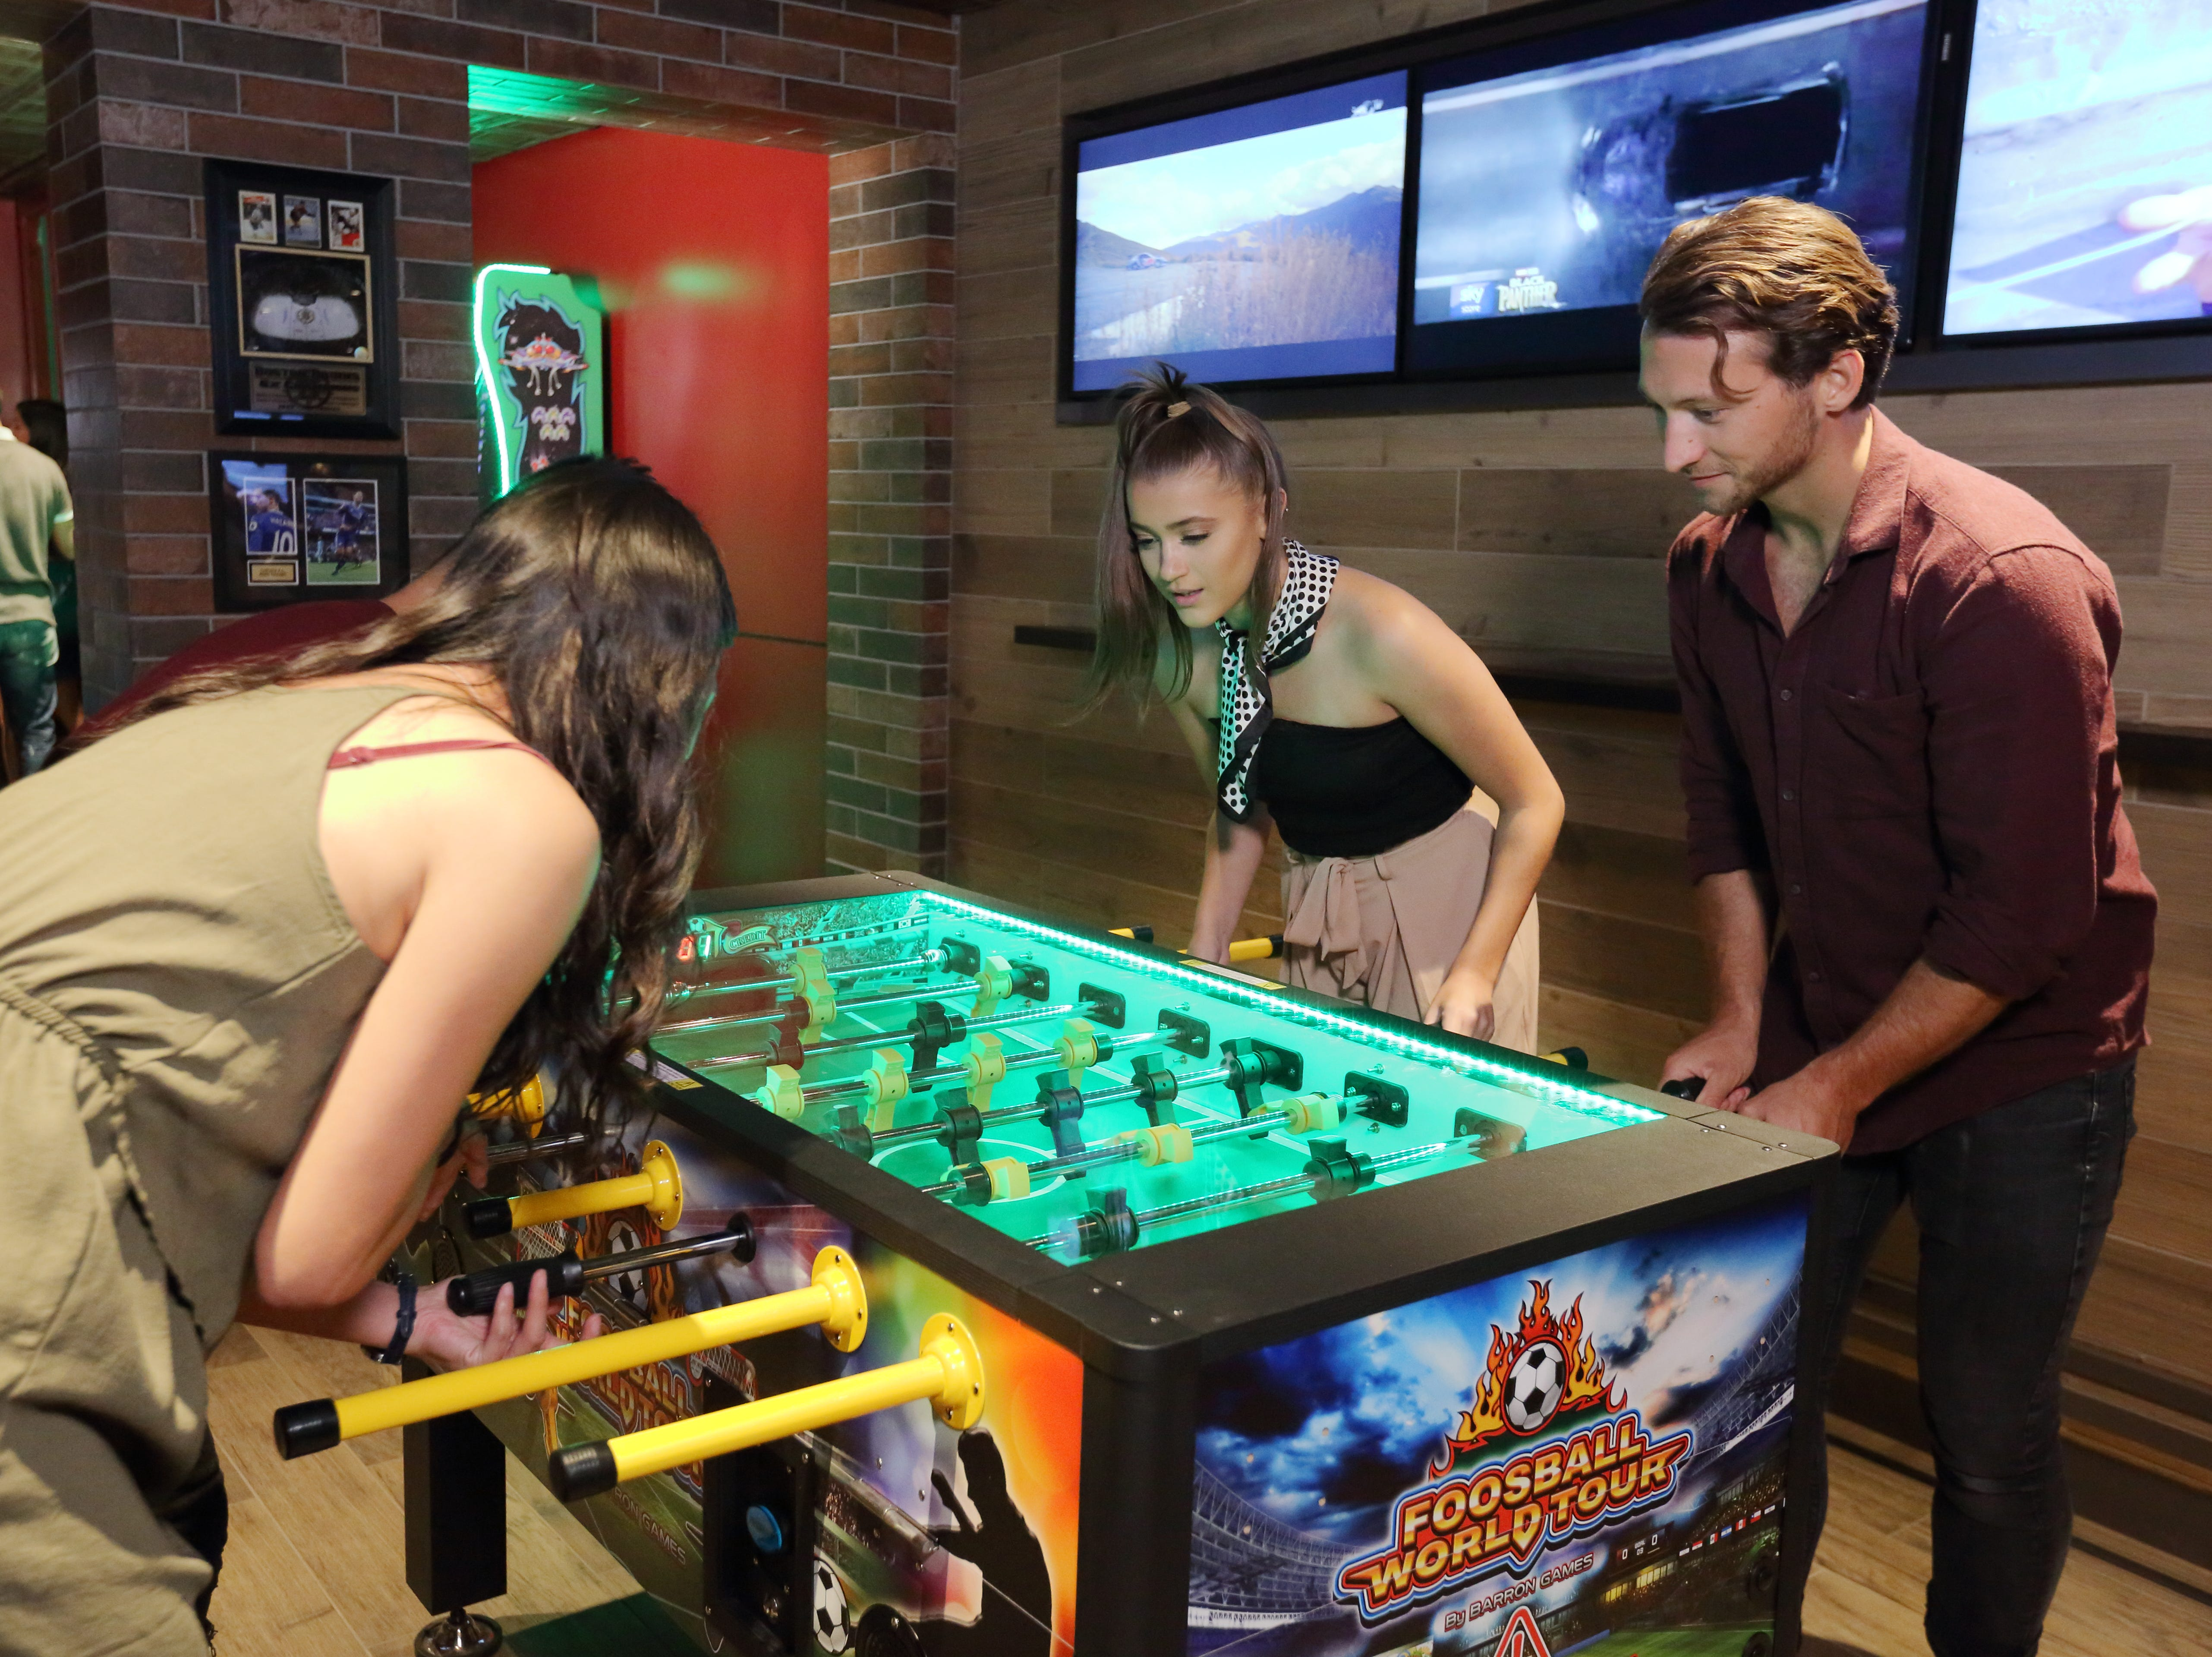 The Playmakers Sports Bar & Arcade on the revamped Mariner of the Seas now features foosball and other attractions.